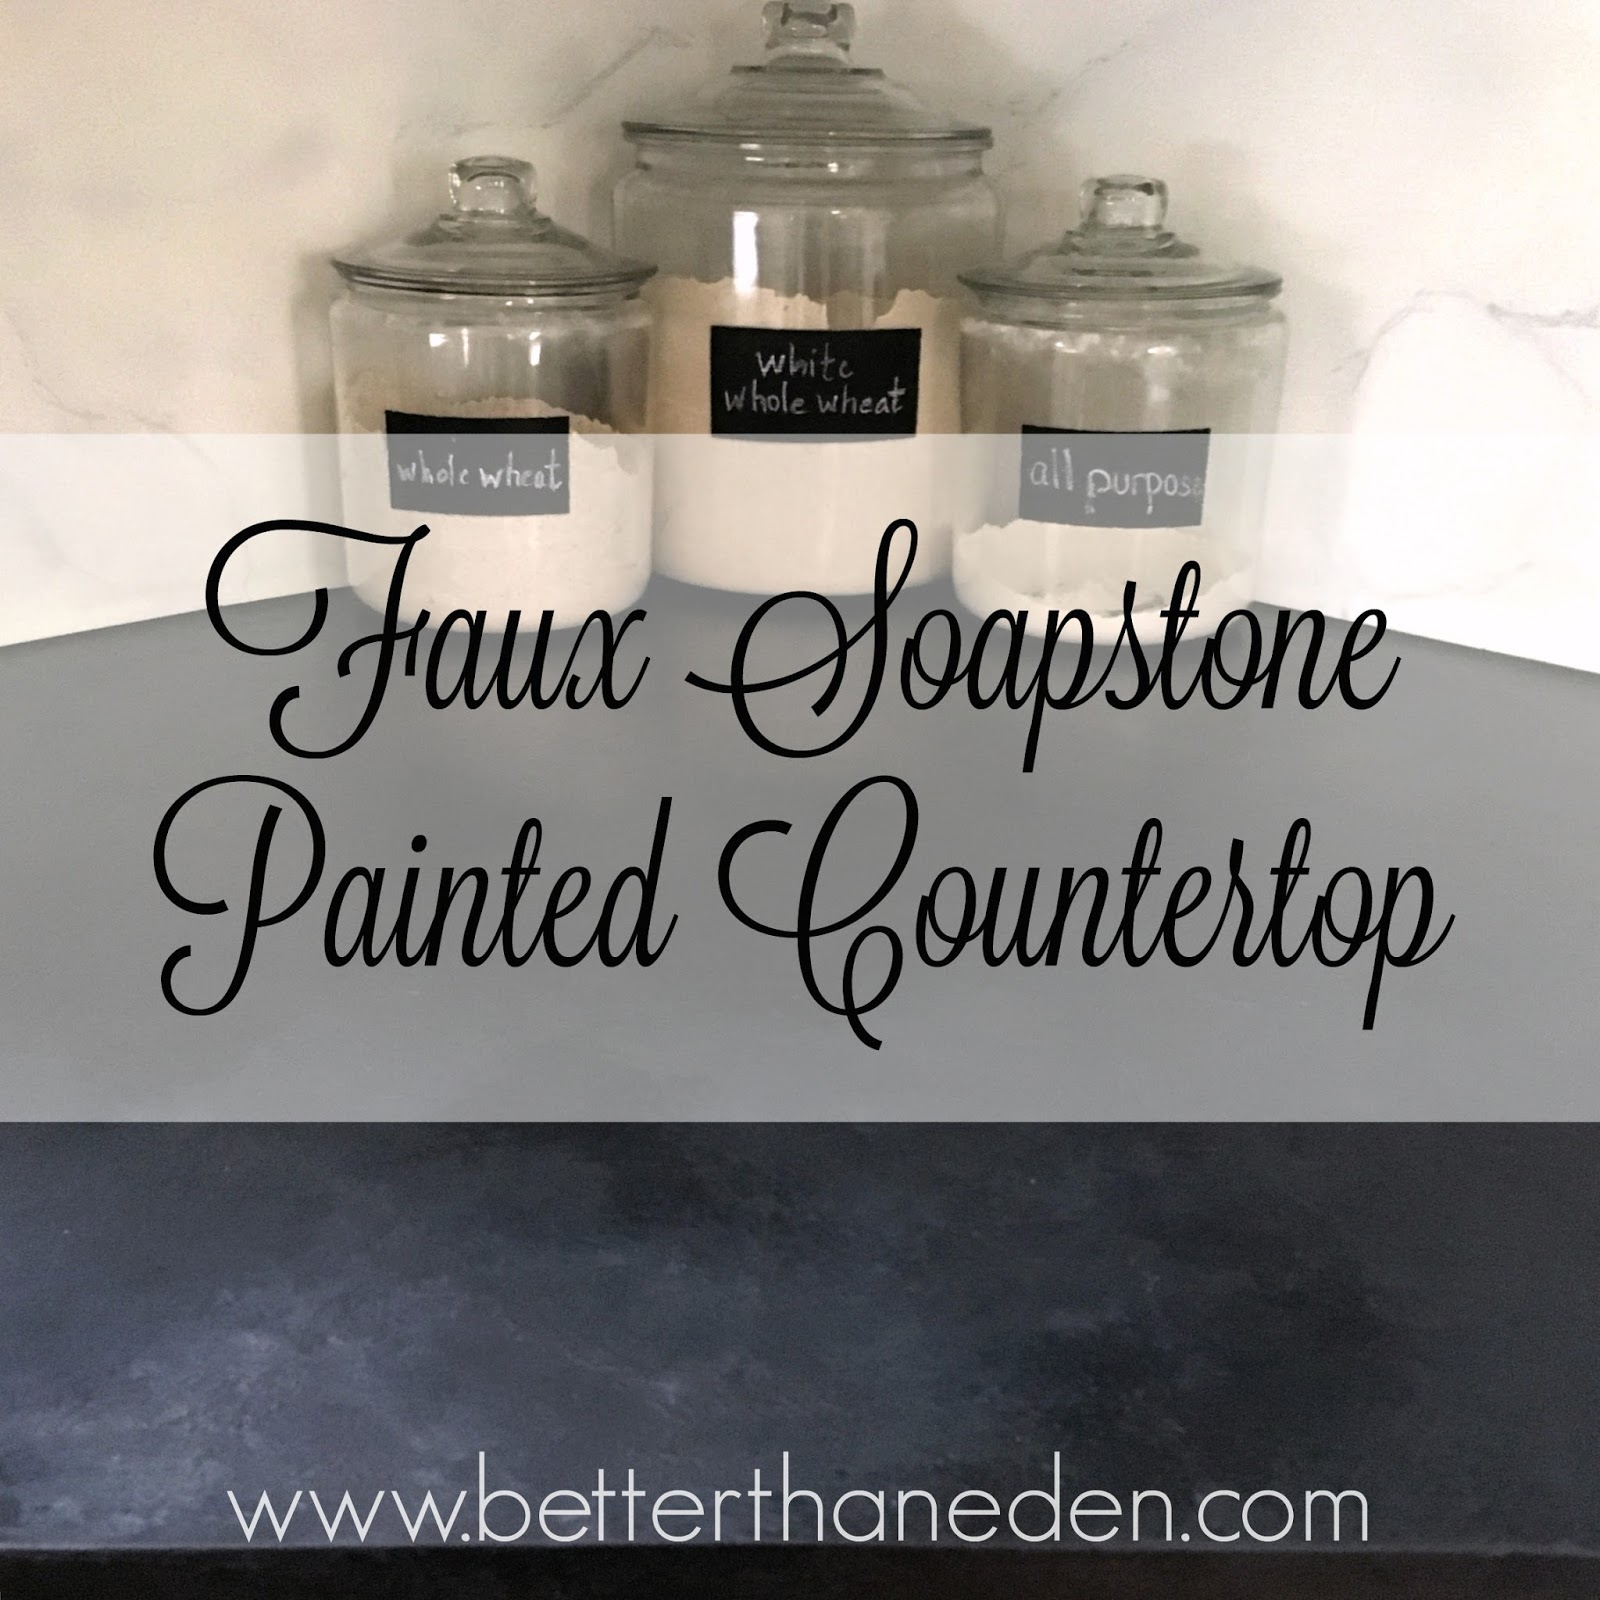 A Faux Soapstone Painted Countertop Mary Haseltine